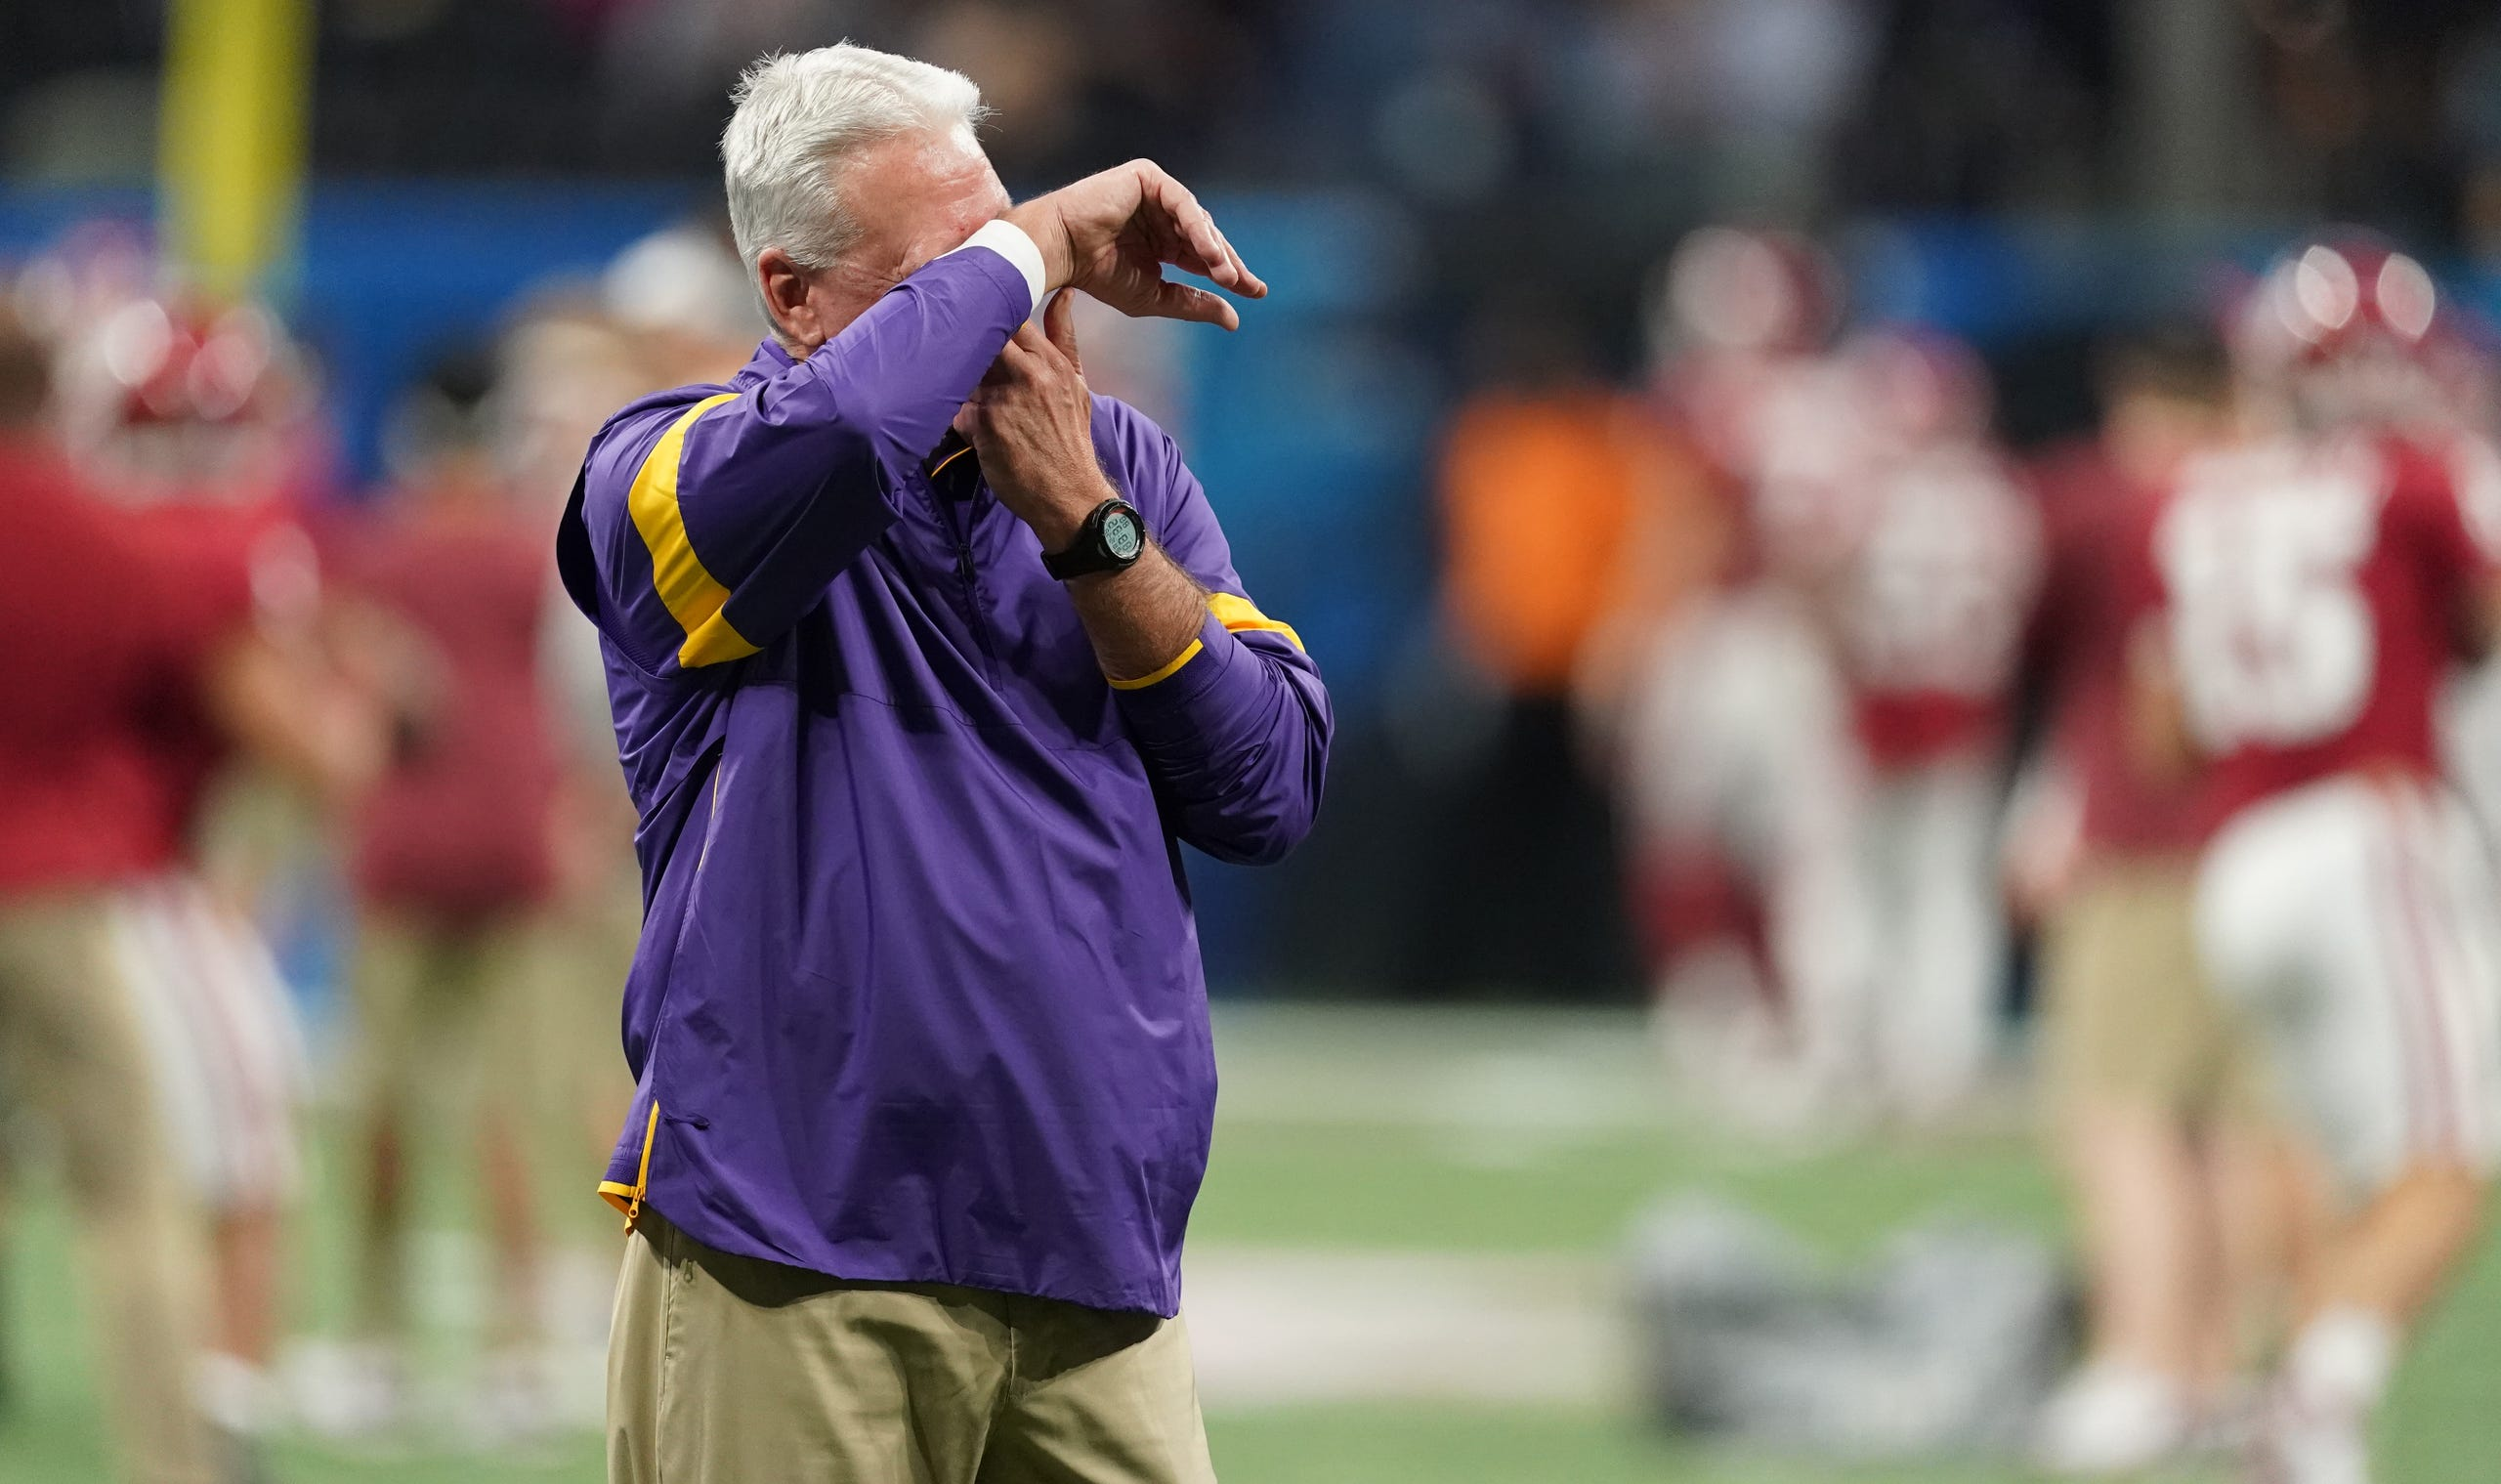 Dec 28, 2019; Atlanta, Georgia, USA; LSU Tigers offensive coordinator/quarterbacks coach Steve Ensminger reacts before the 2019 Peach Bowl college football playoff semifinal game against the Oklahoma Sooners. Mandatory Credit: John David Mercer-USA TODAY Sports